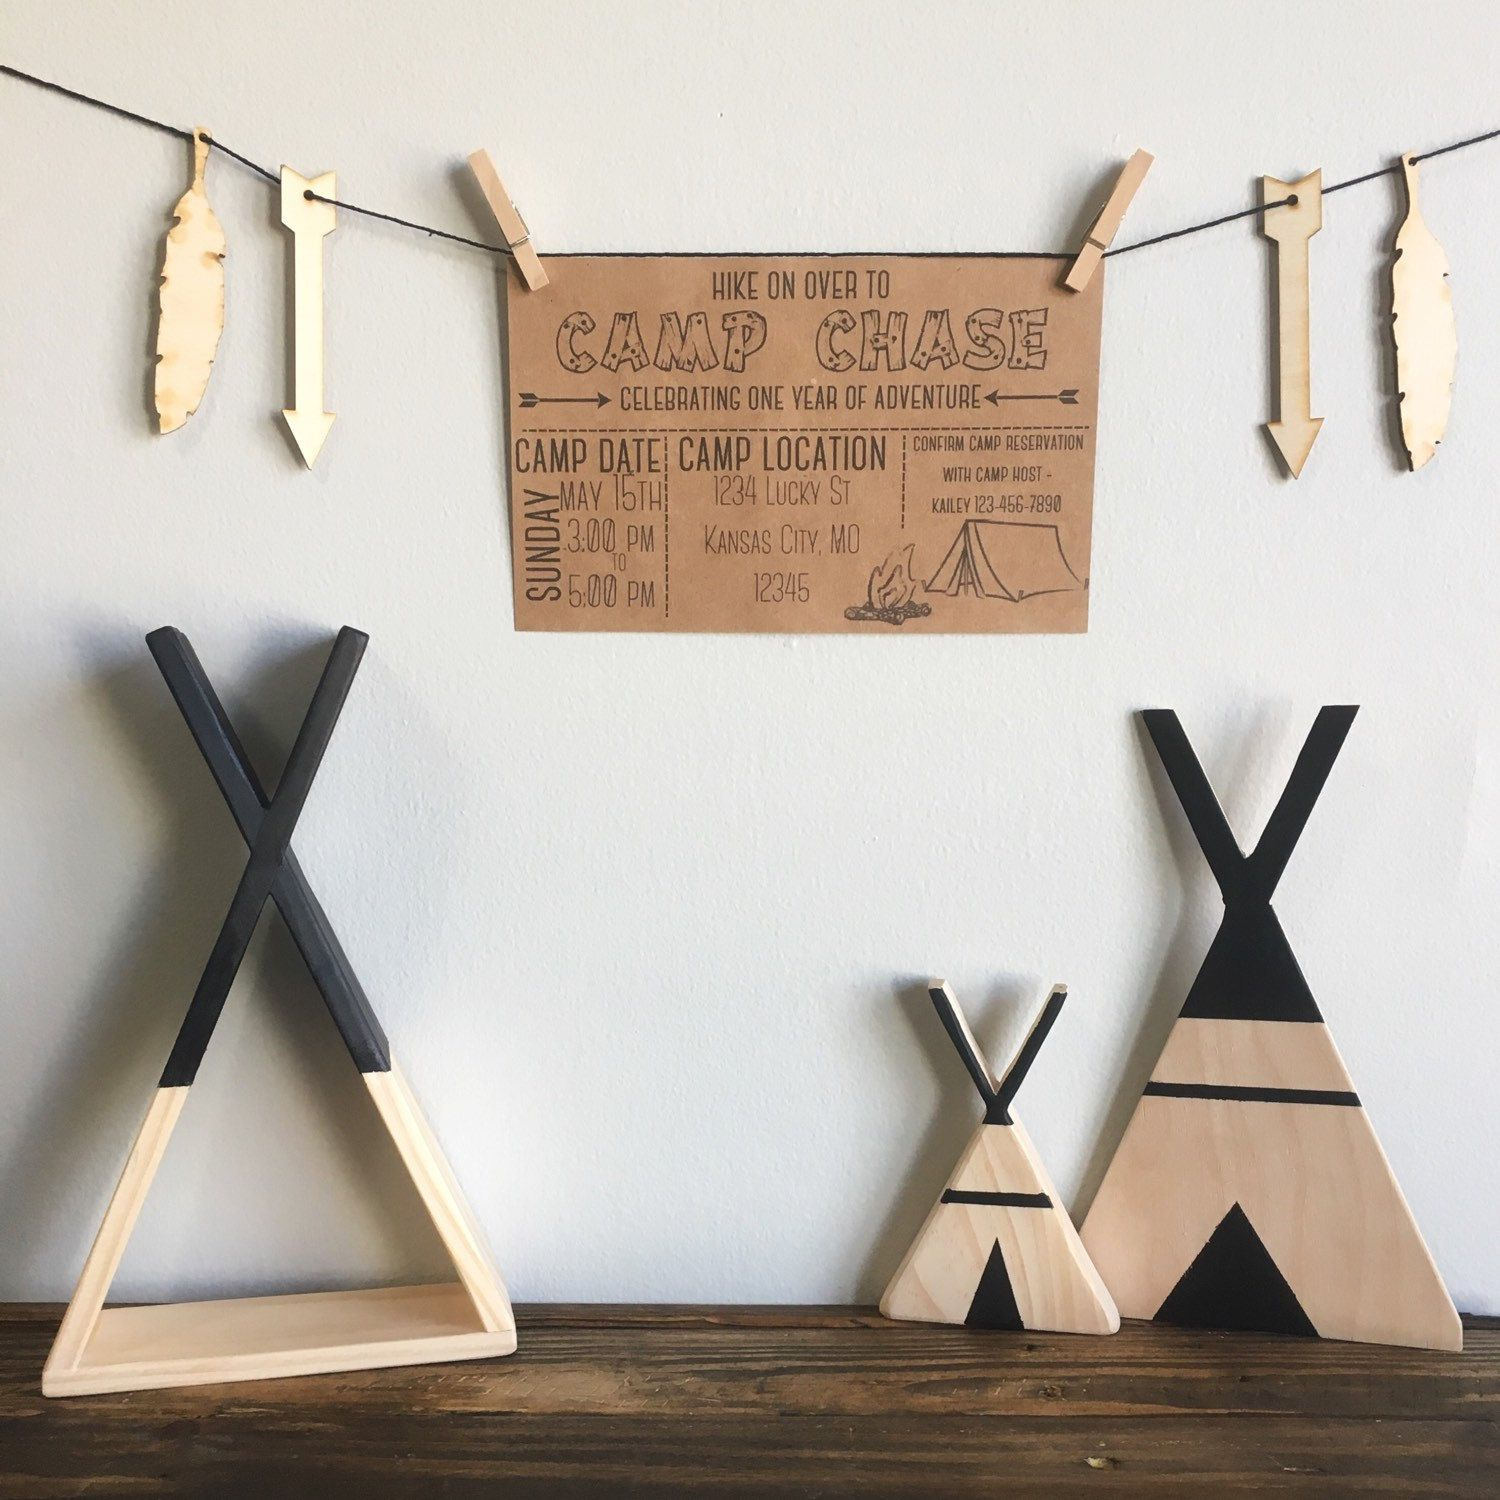 Perfect little goodies to go along with your camp out themed birthday party!  Check out these shops on Instagram! Invitation: @chasingprints Wooden teepees: @jaggerleesteepees Wooden arrows/feathers garland: @thatspecialtouch_homedecor